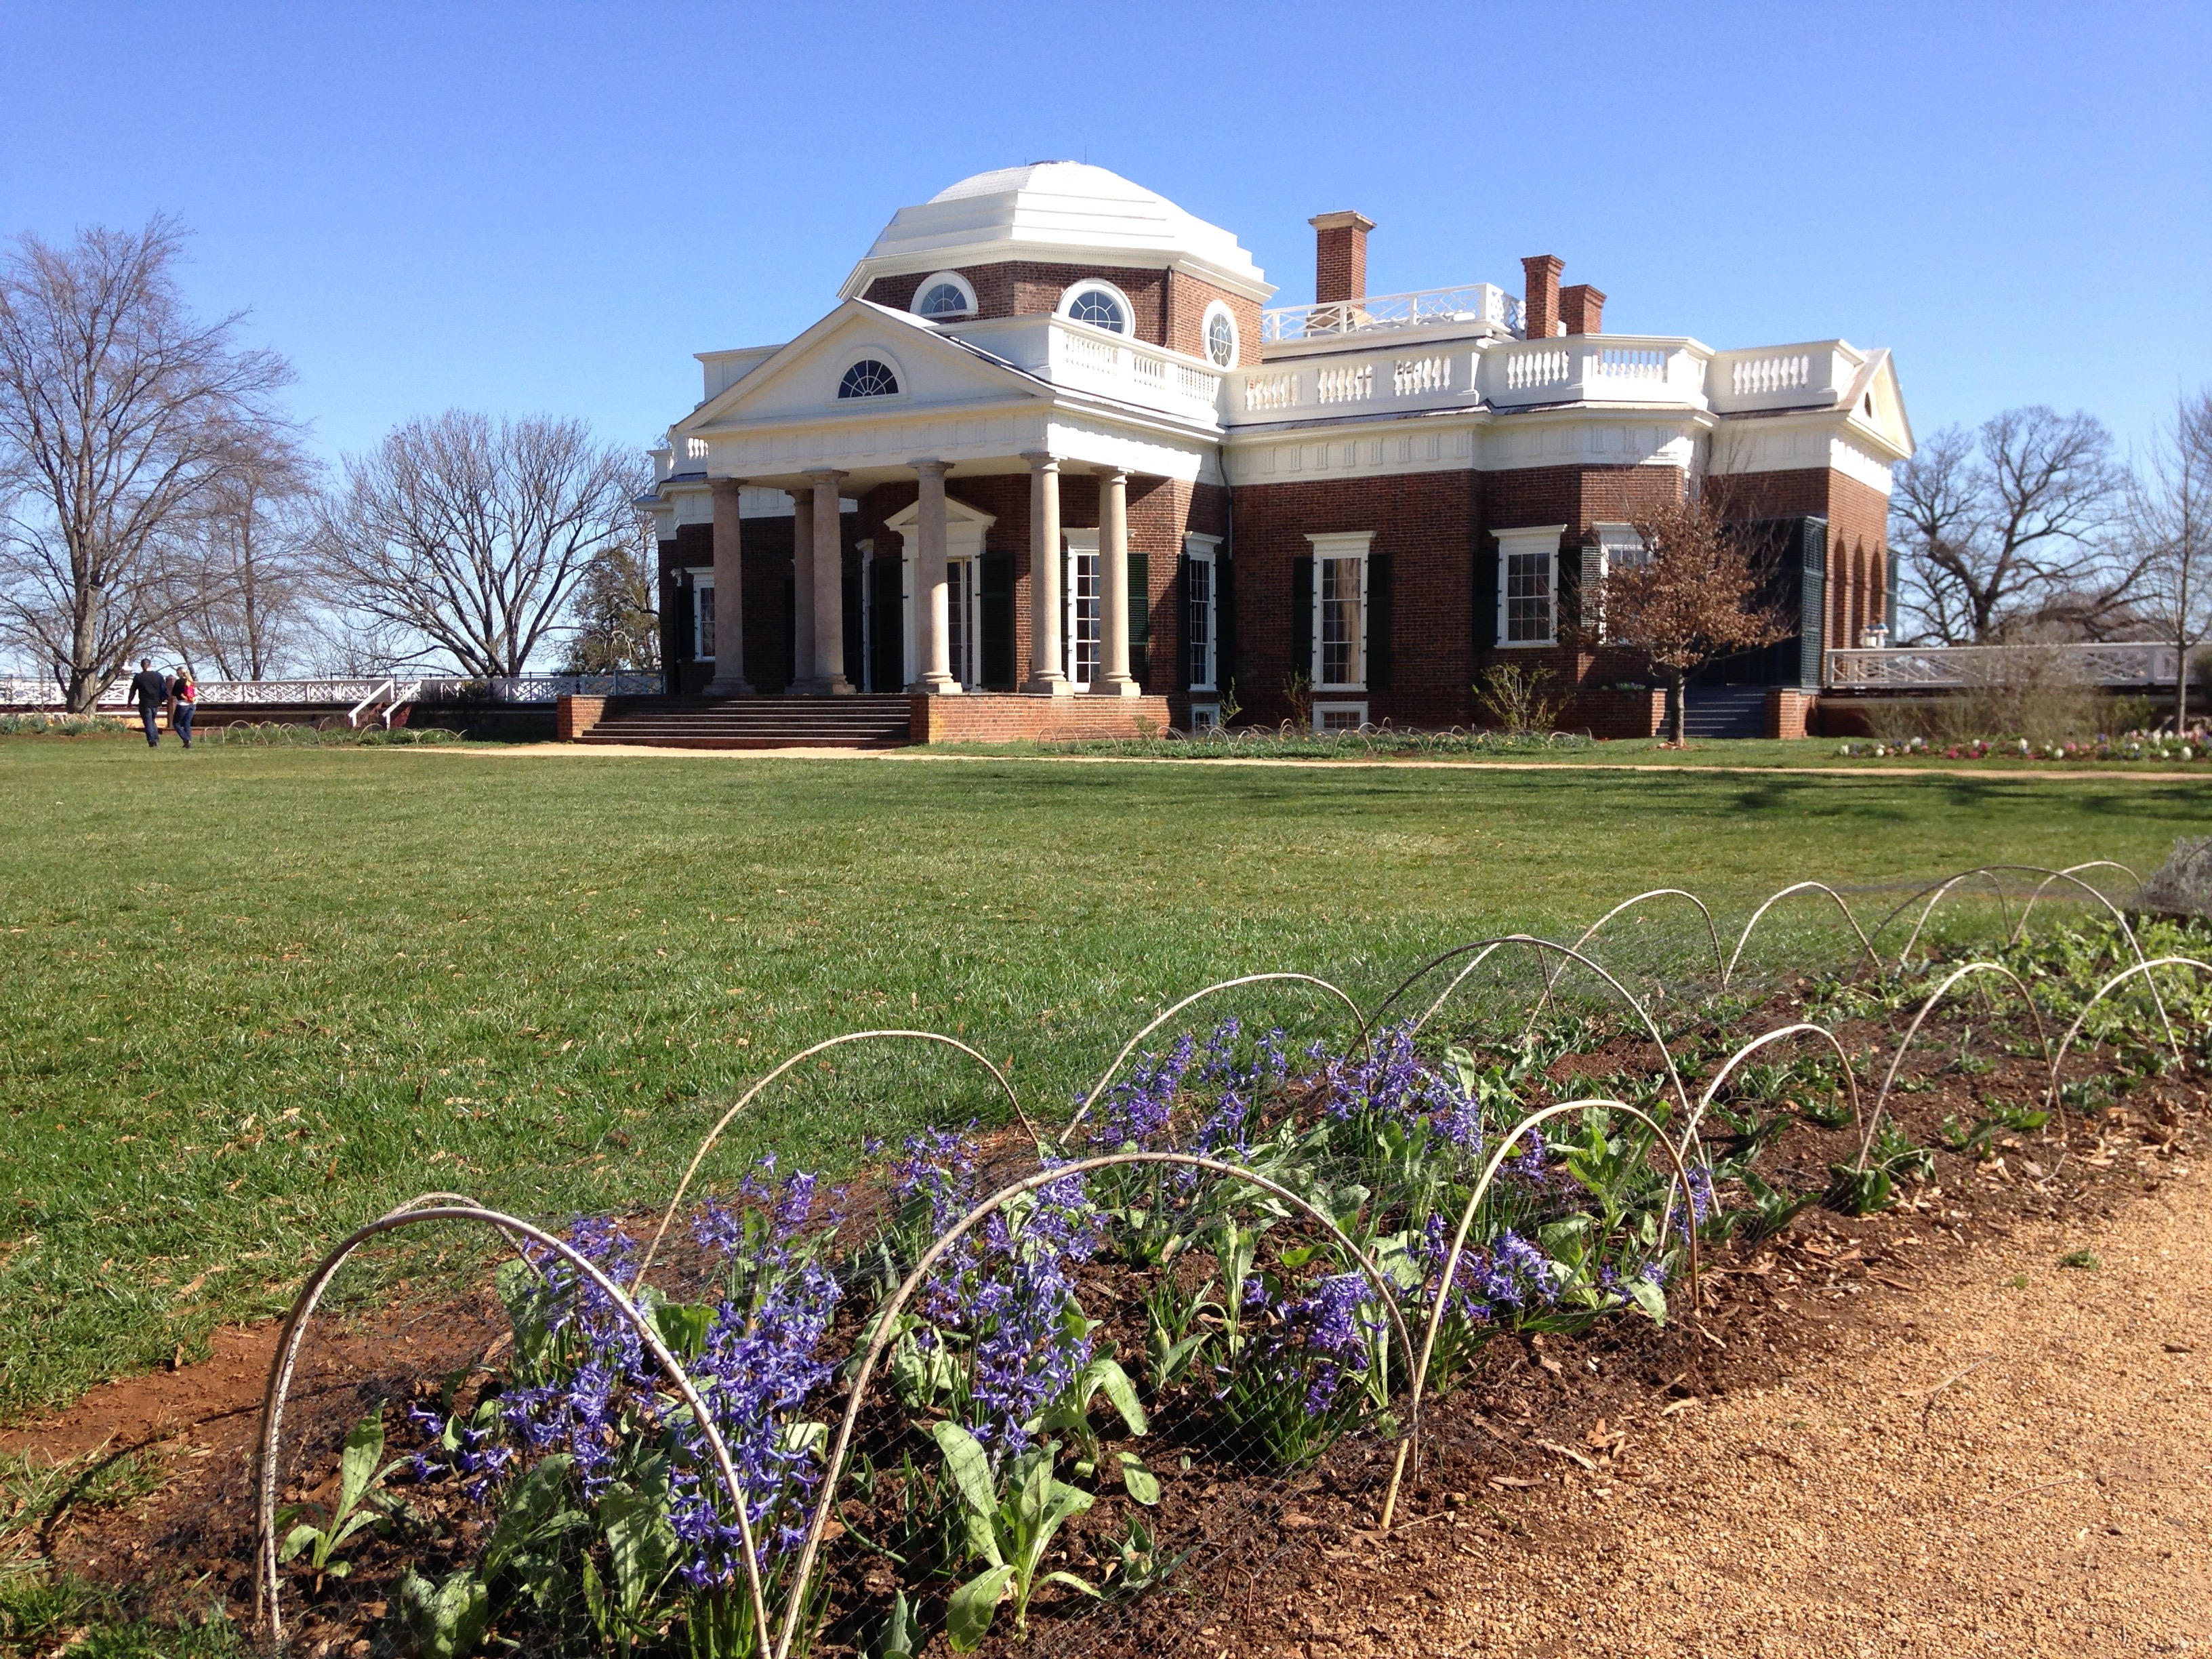 monticello essay After his term as president expired in 1809, jefferson lived full time at monticello  the house, which jefferson called his essay in architecture,.